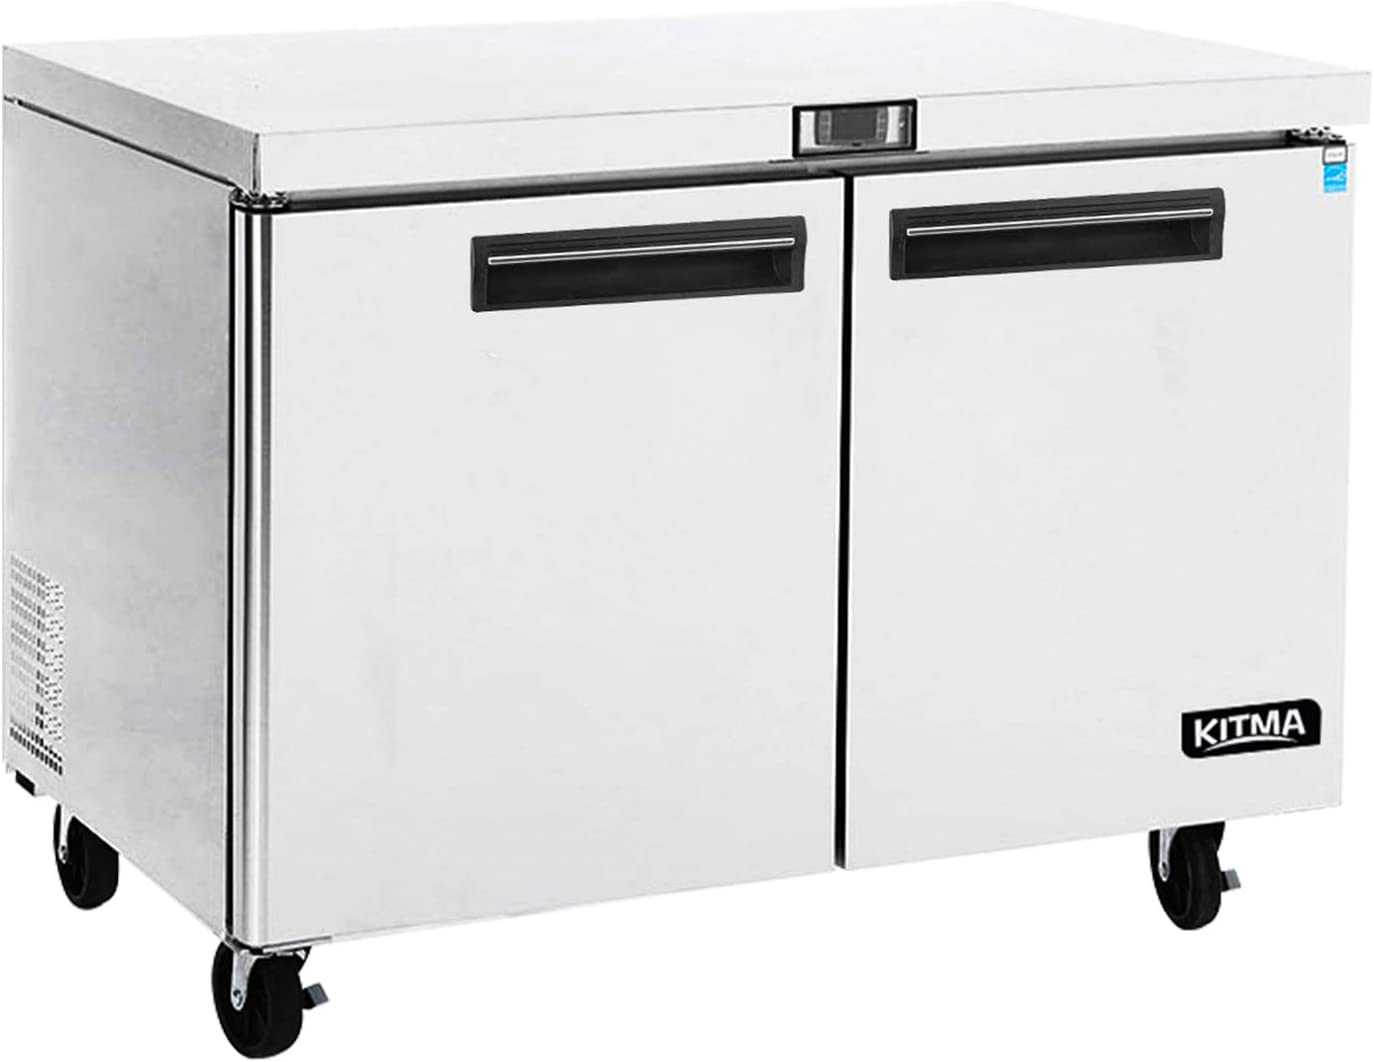 Commercial 2 Door Undercounter Freezer - KITMA 13 Cu. Ft Stainless Steel Worktop Freezer for Kitchen, 0°F - 8°F 61gJkpUralL